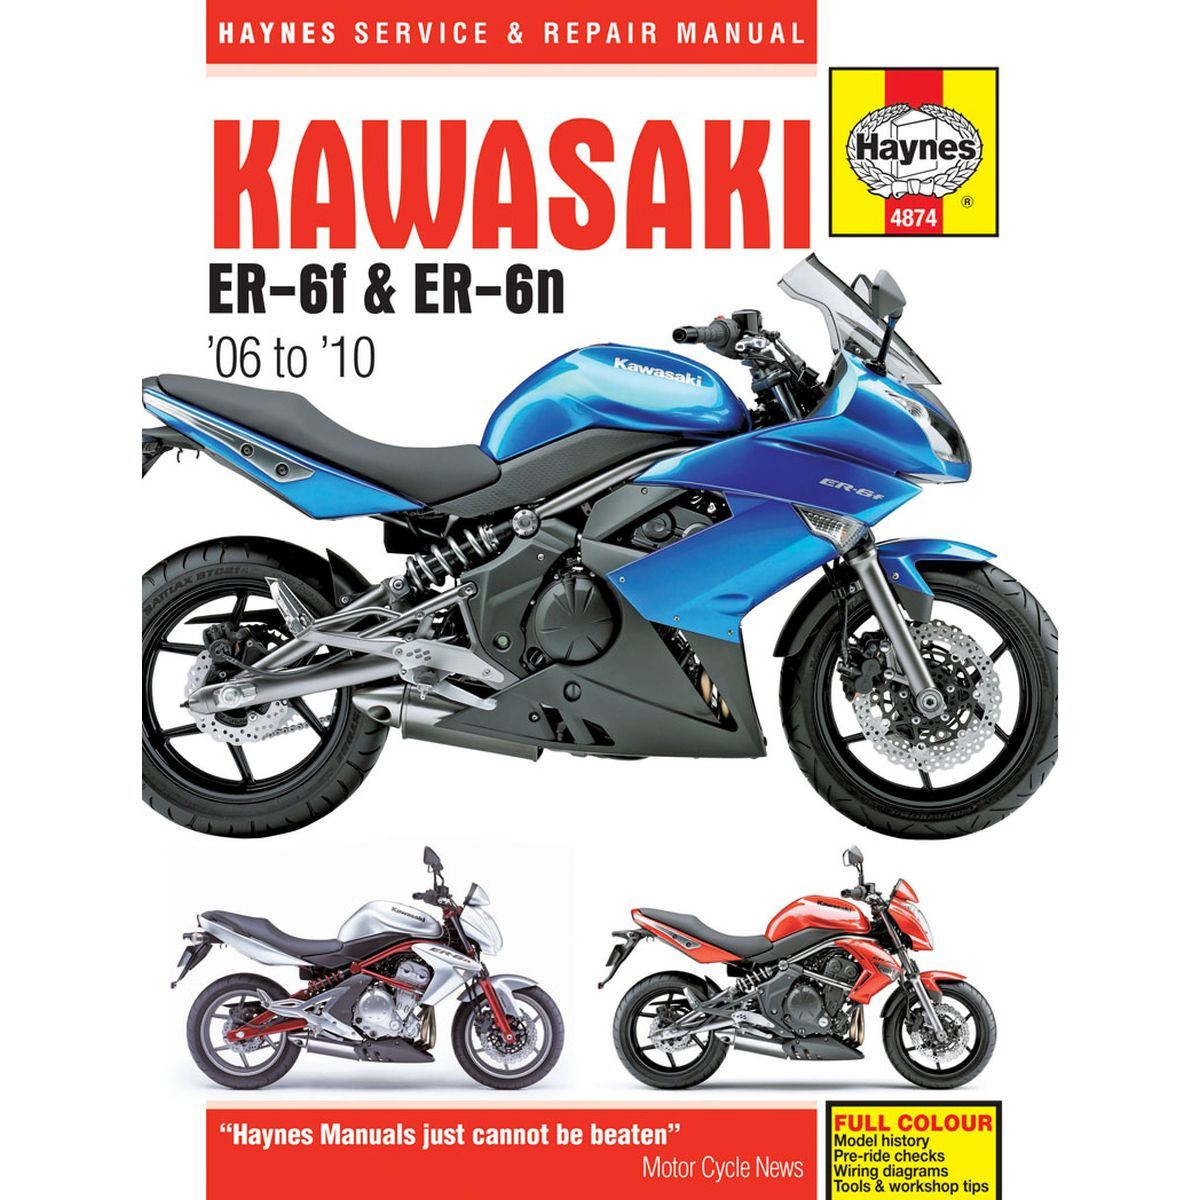 Manual Haynes for 2010 Kawasaki ER-6F (EX650CAF)